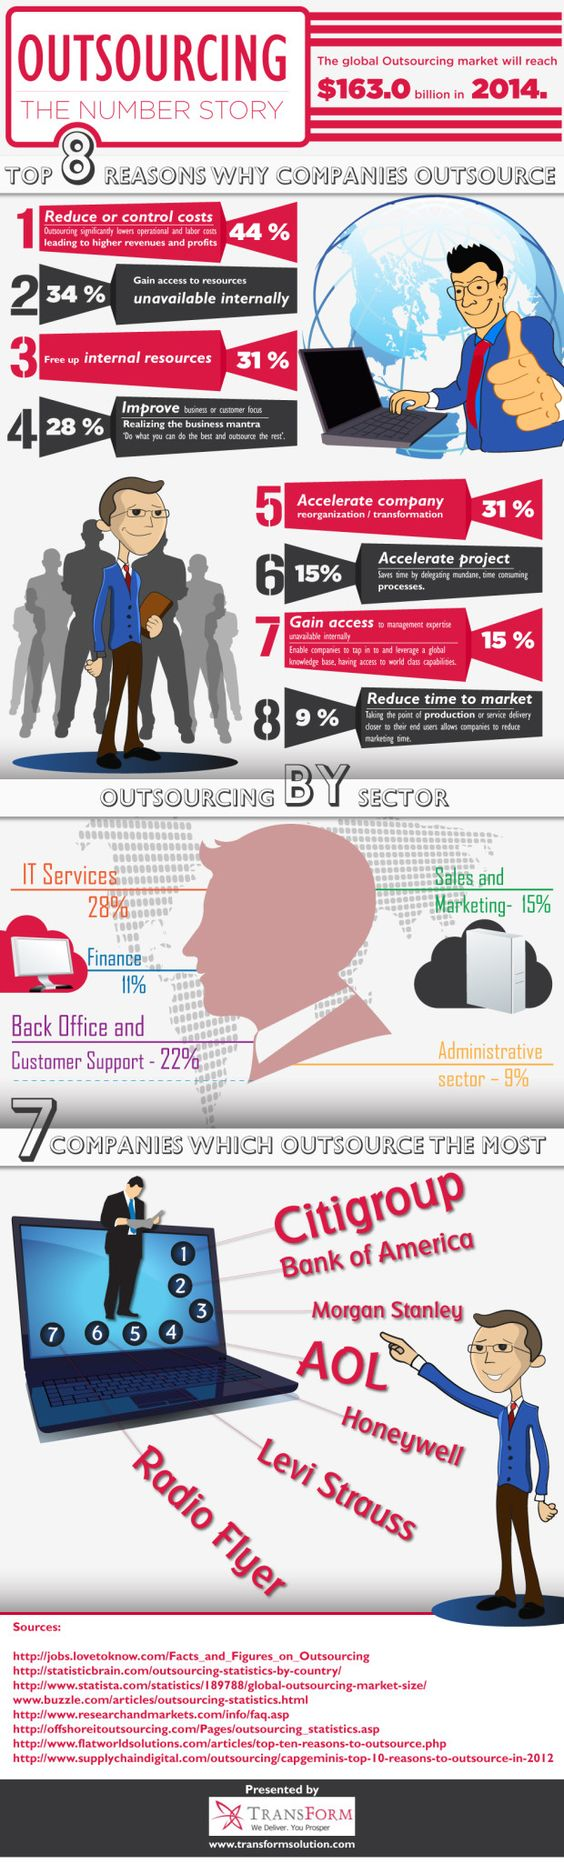 Top reasons why companies outsource